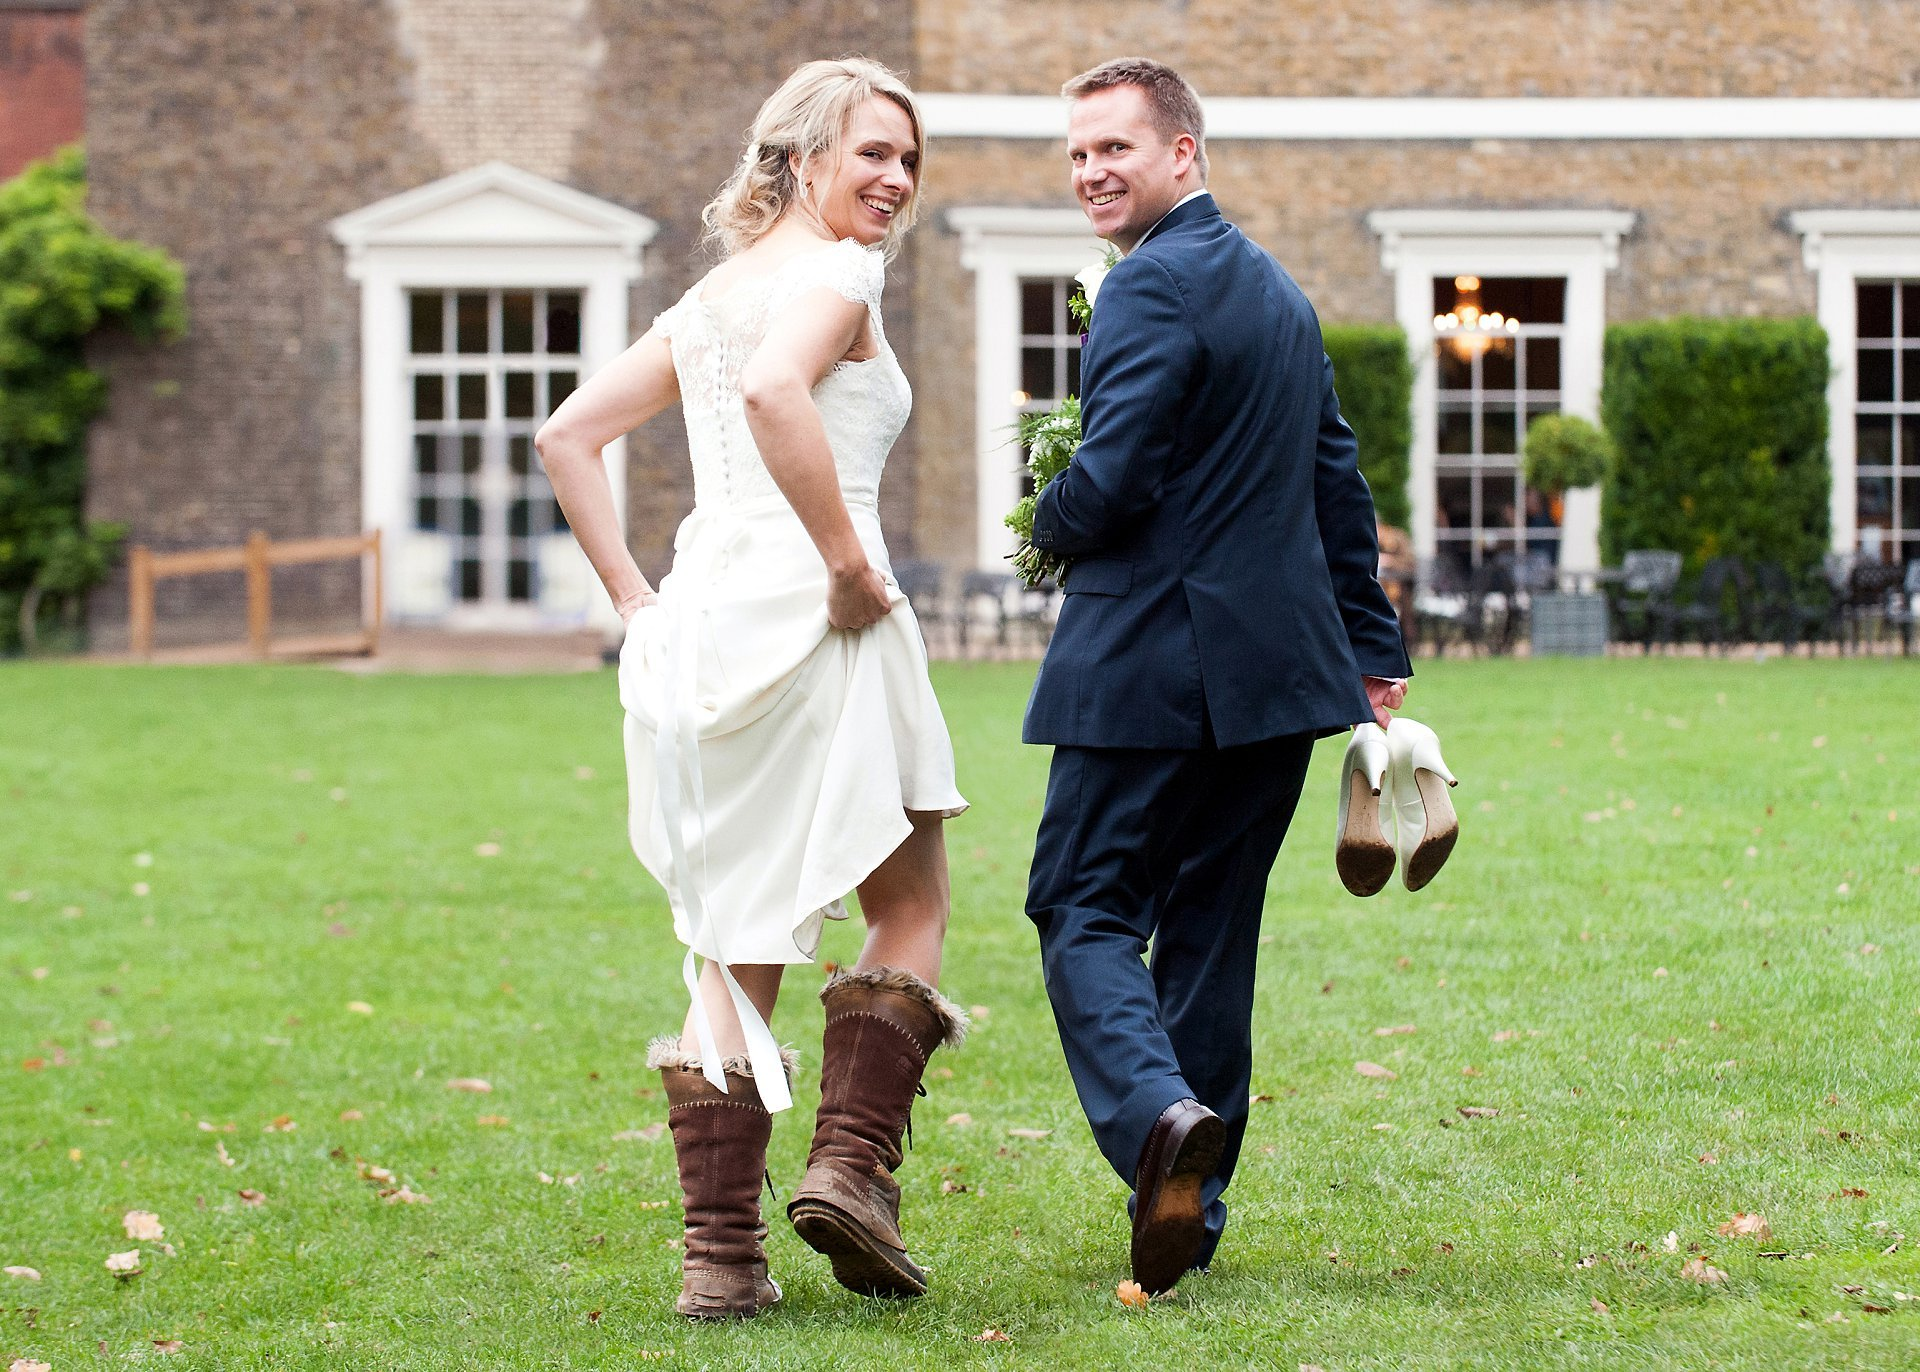 Fulham Palace Wedding Photography - the happy couple walking across the lawn at Fulham Palace, the bride wearing the photographer's very old and scruffy sorel boots